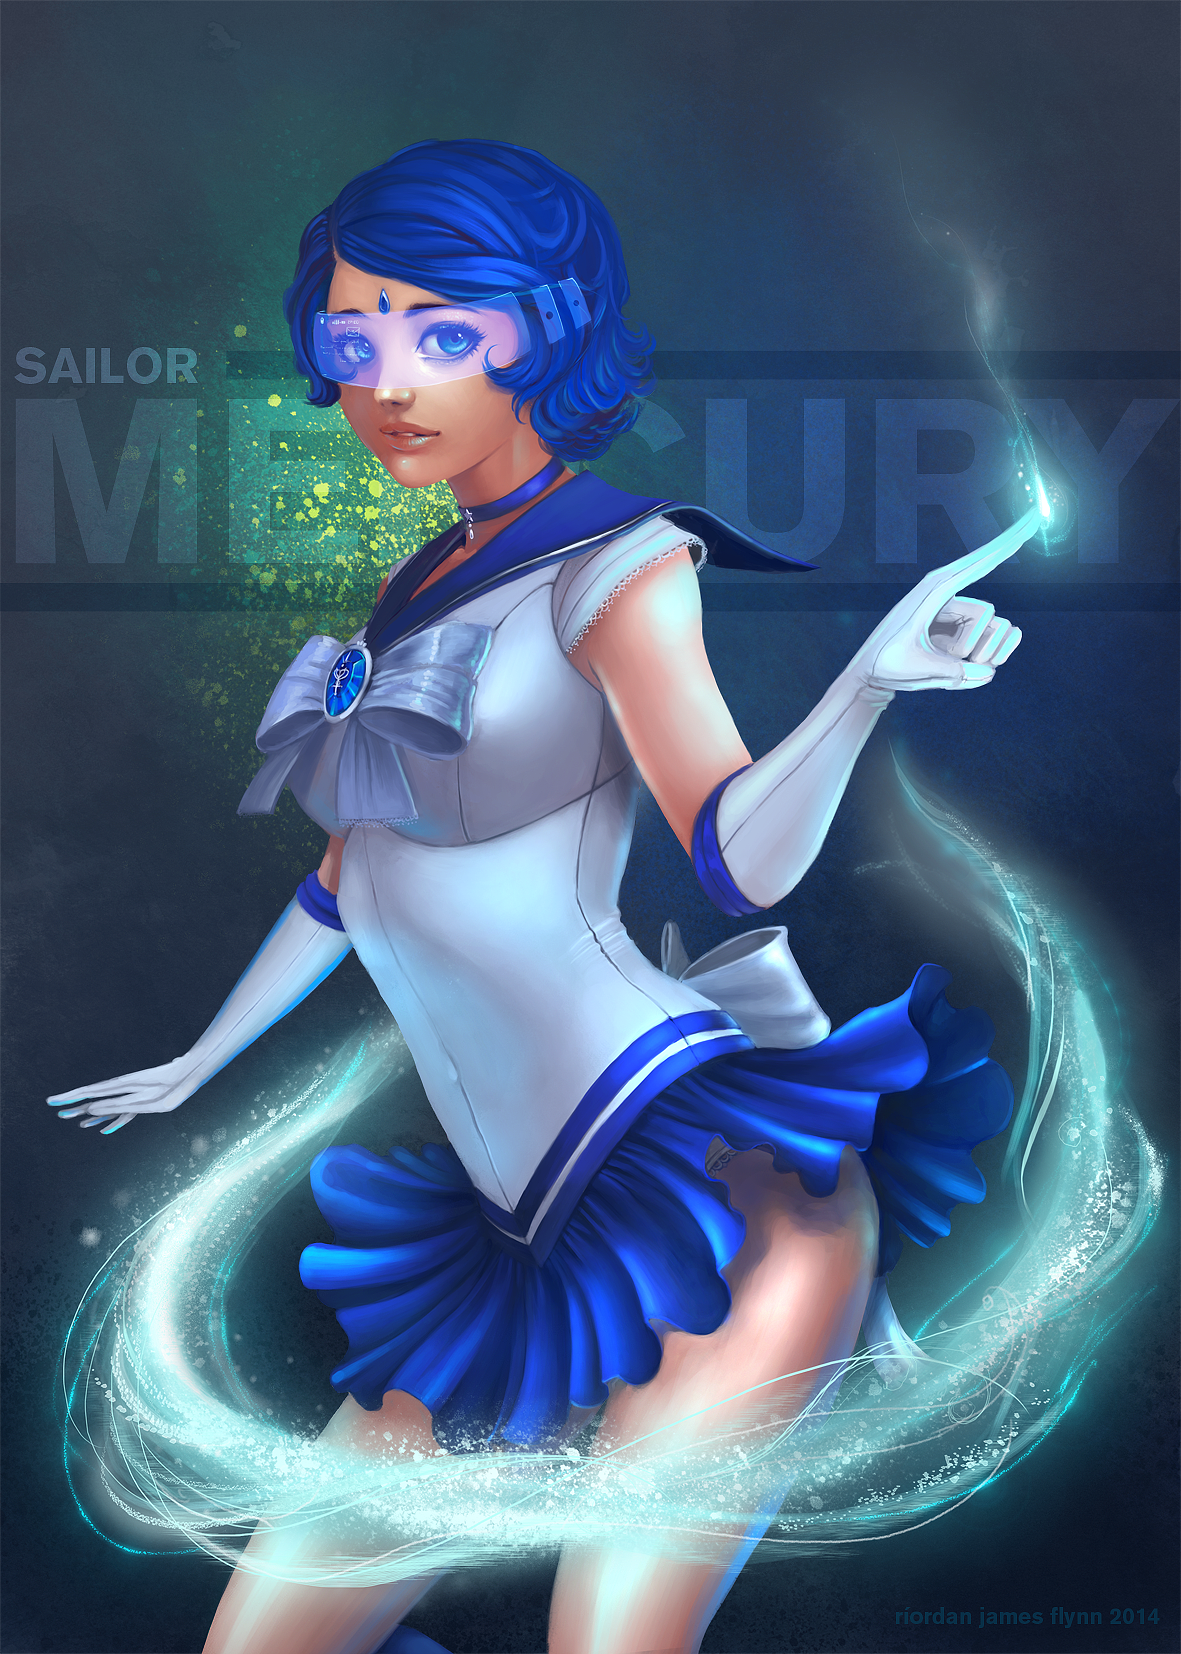 Sailor Mercury by riordan-j-flynn